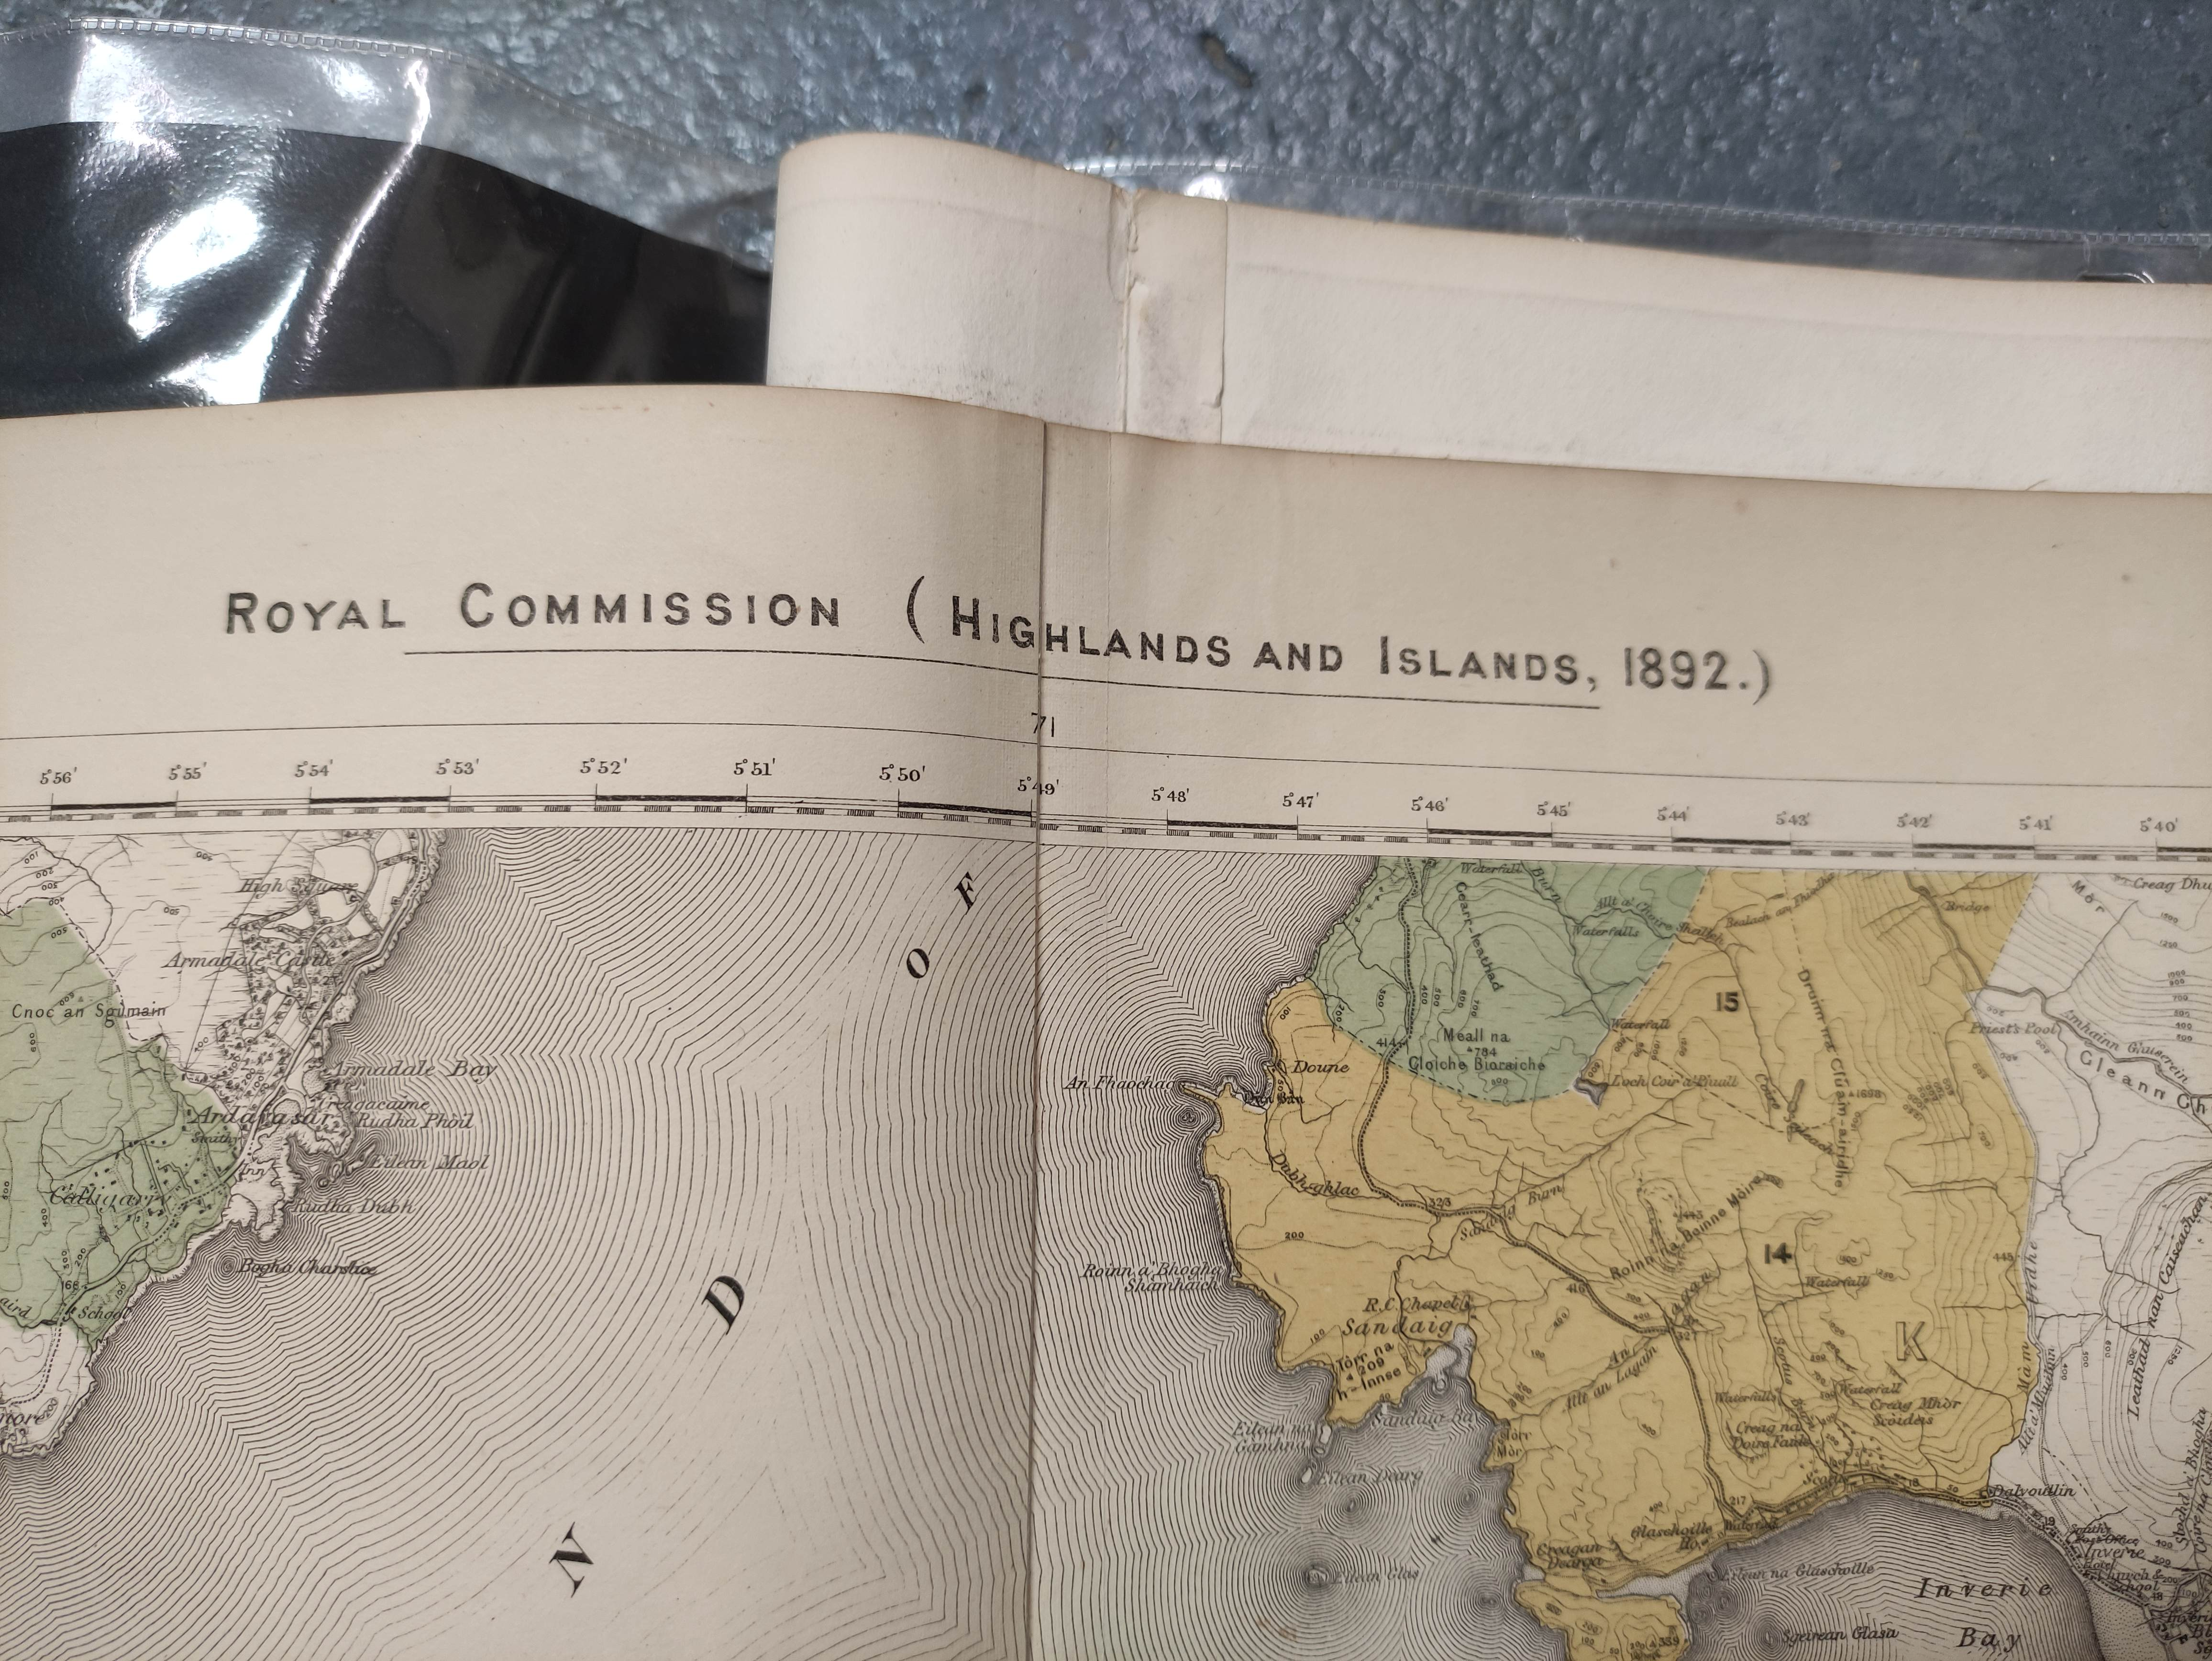 JOHNSON W. & A. K.Map of the County of Inverness with the railways. 4 part eng. map, hand col. - Image 2 of 6